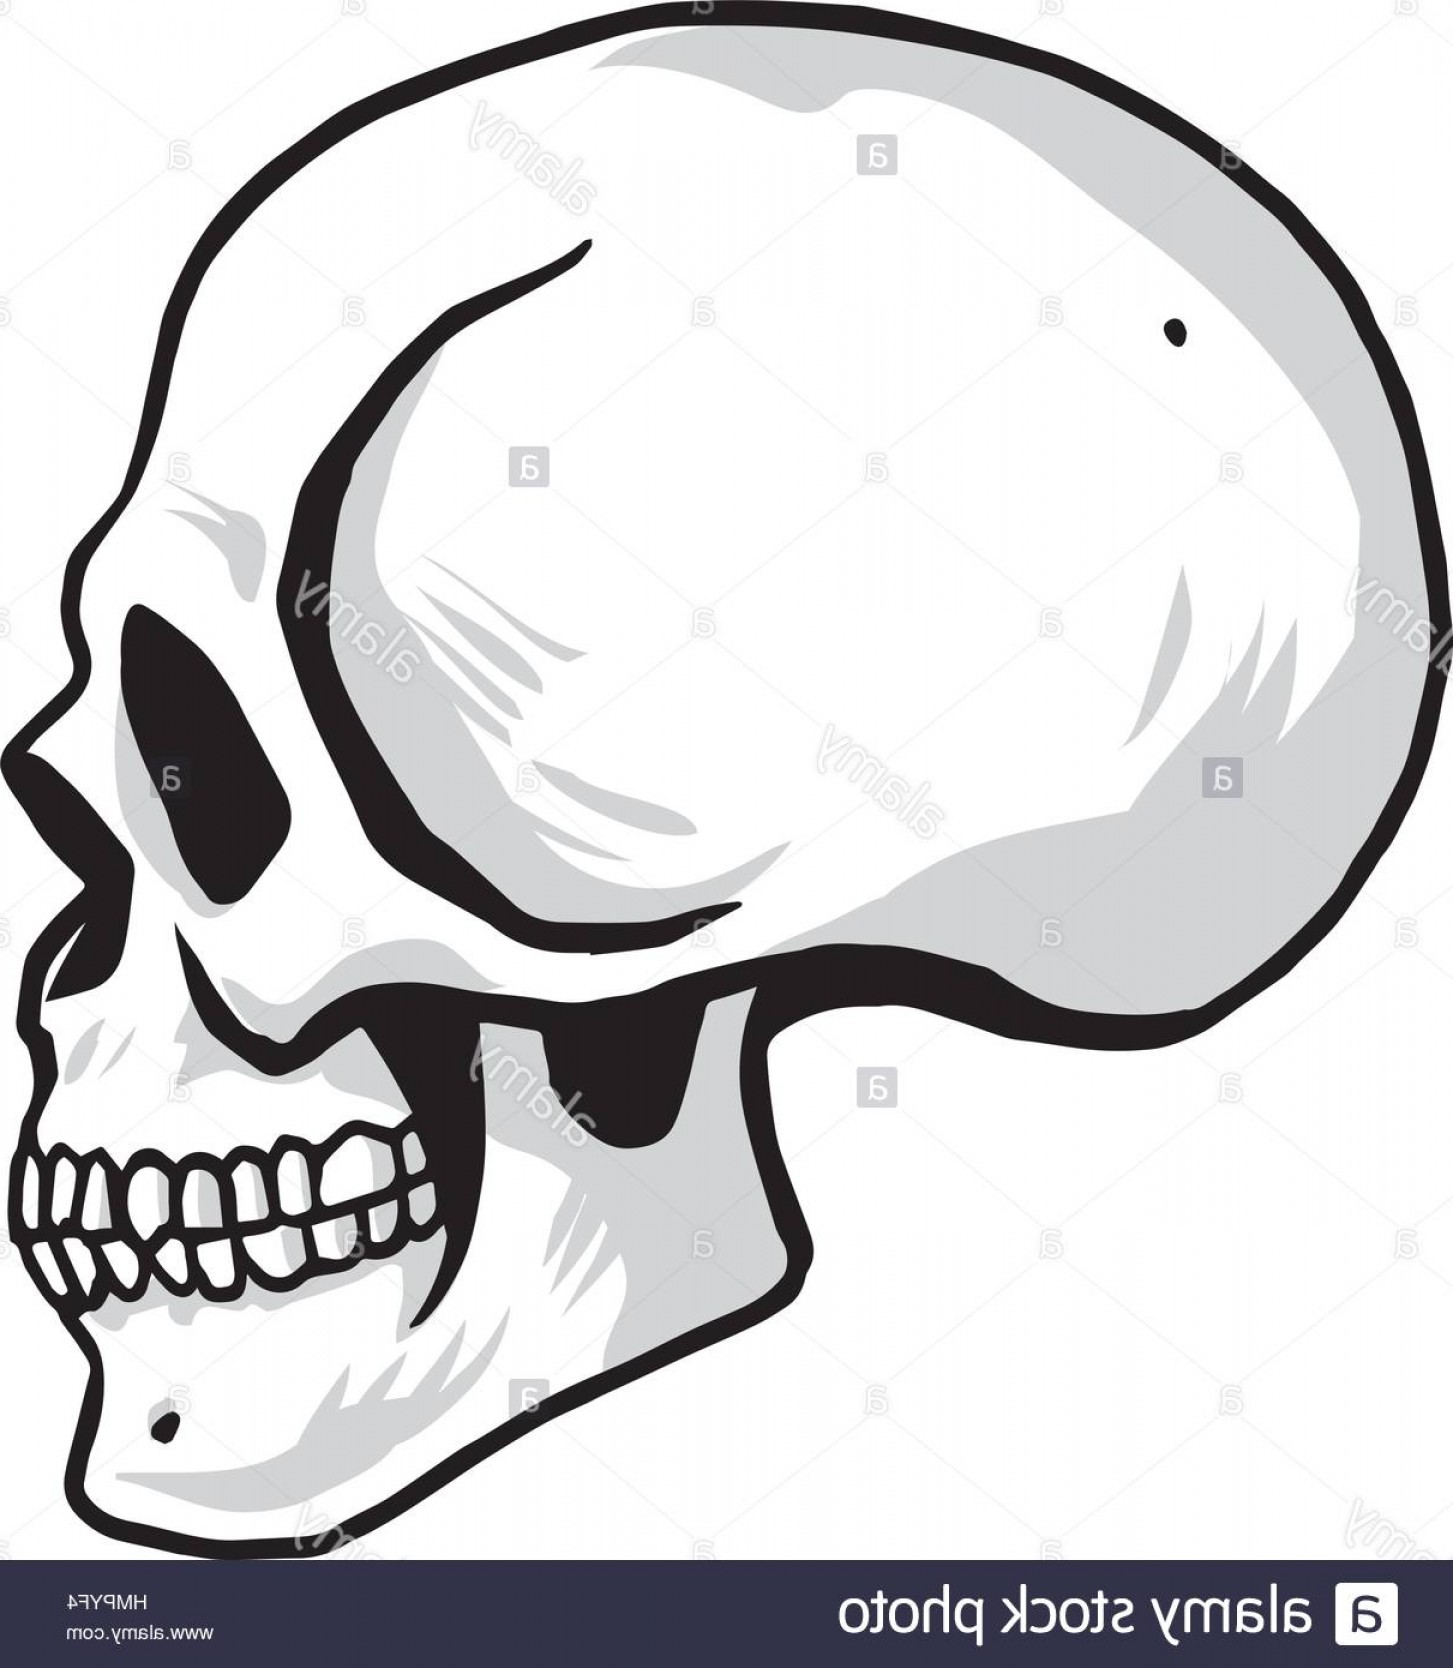 Cool Skull Vector: Stock Photo Skull Vector Illustration Sideview